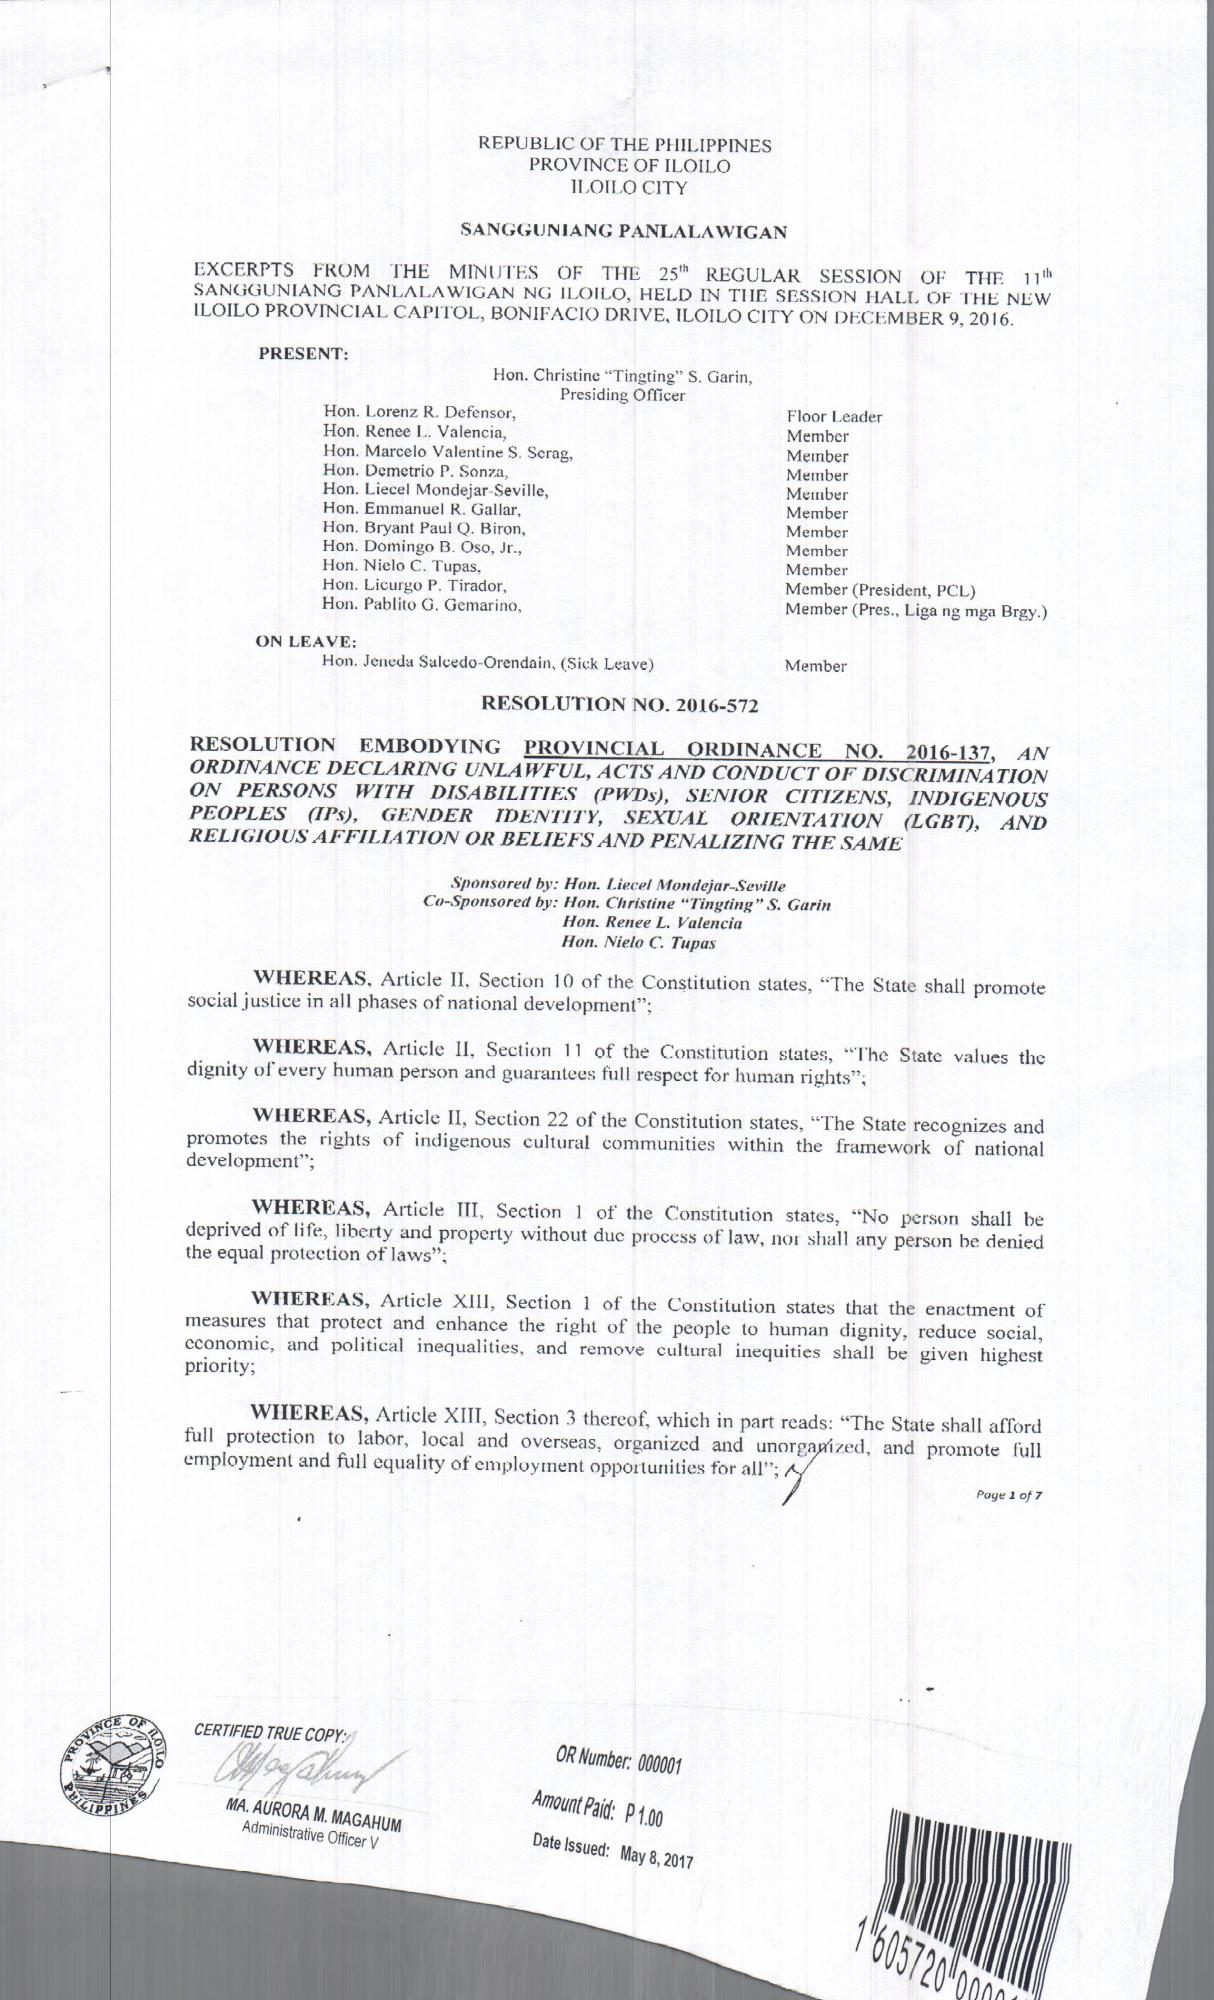 Province of Iloilo Anti Discrimination Ordinance